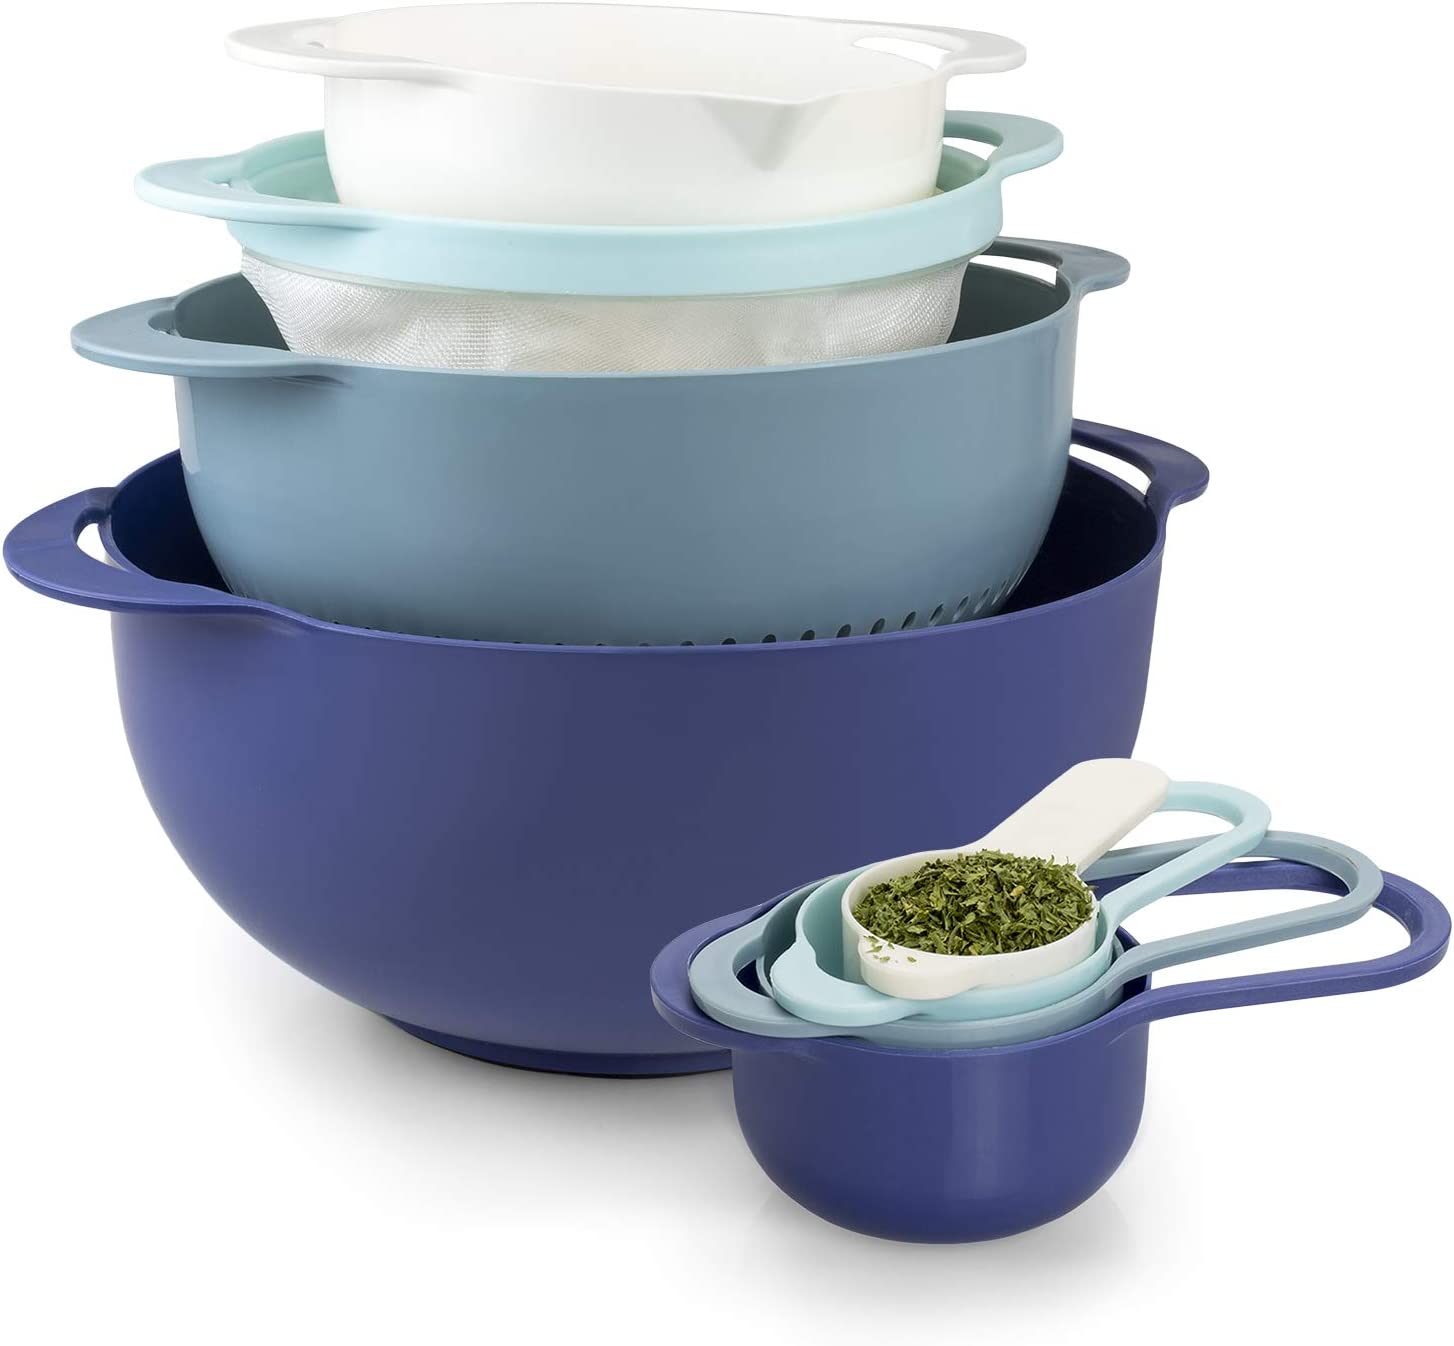 Cook With Color 8 Piece Nesting Bowls with Measuring Cups Colander and Sifter Set | Includes 2 Mixing Bowls, 1 Colander, 1 Sifter and 4 Measuring Cups, Teal